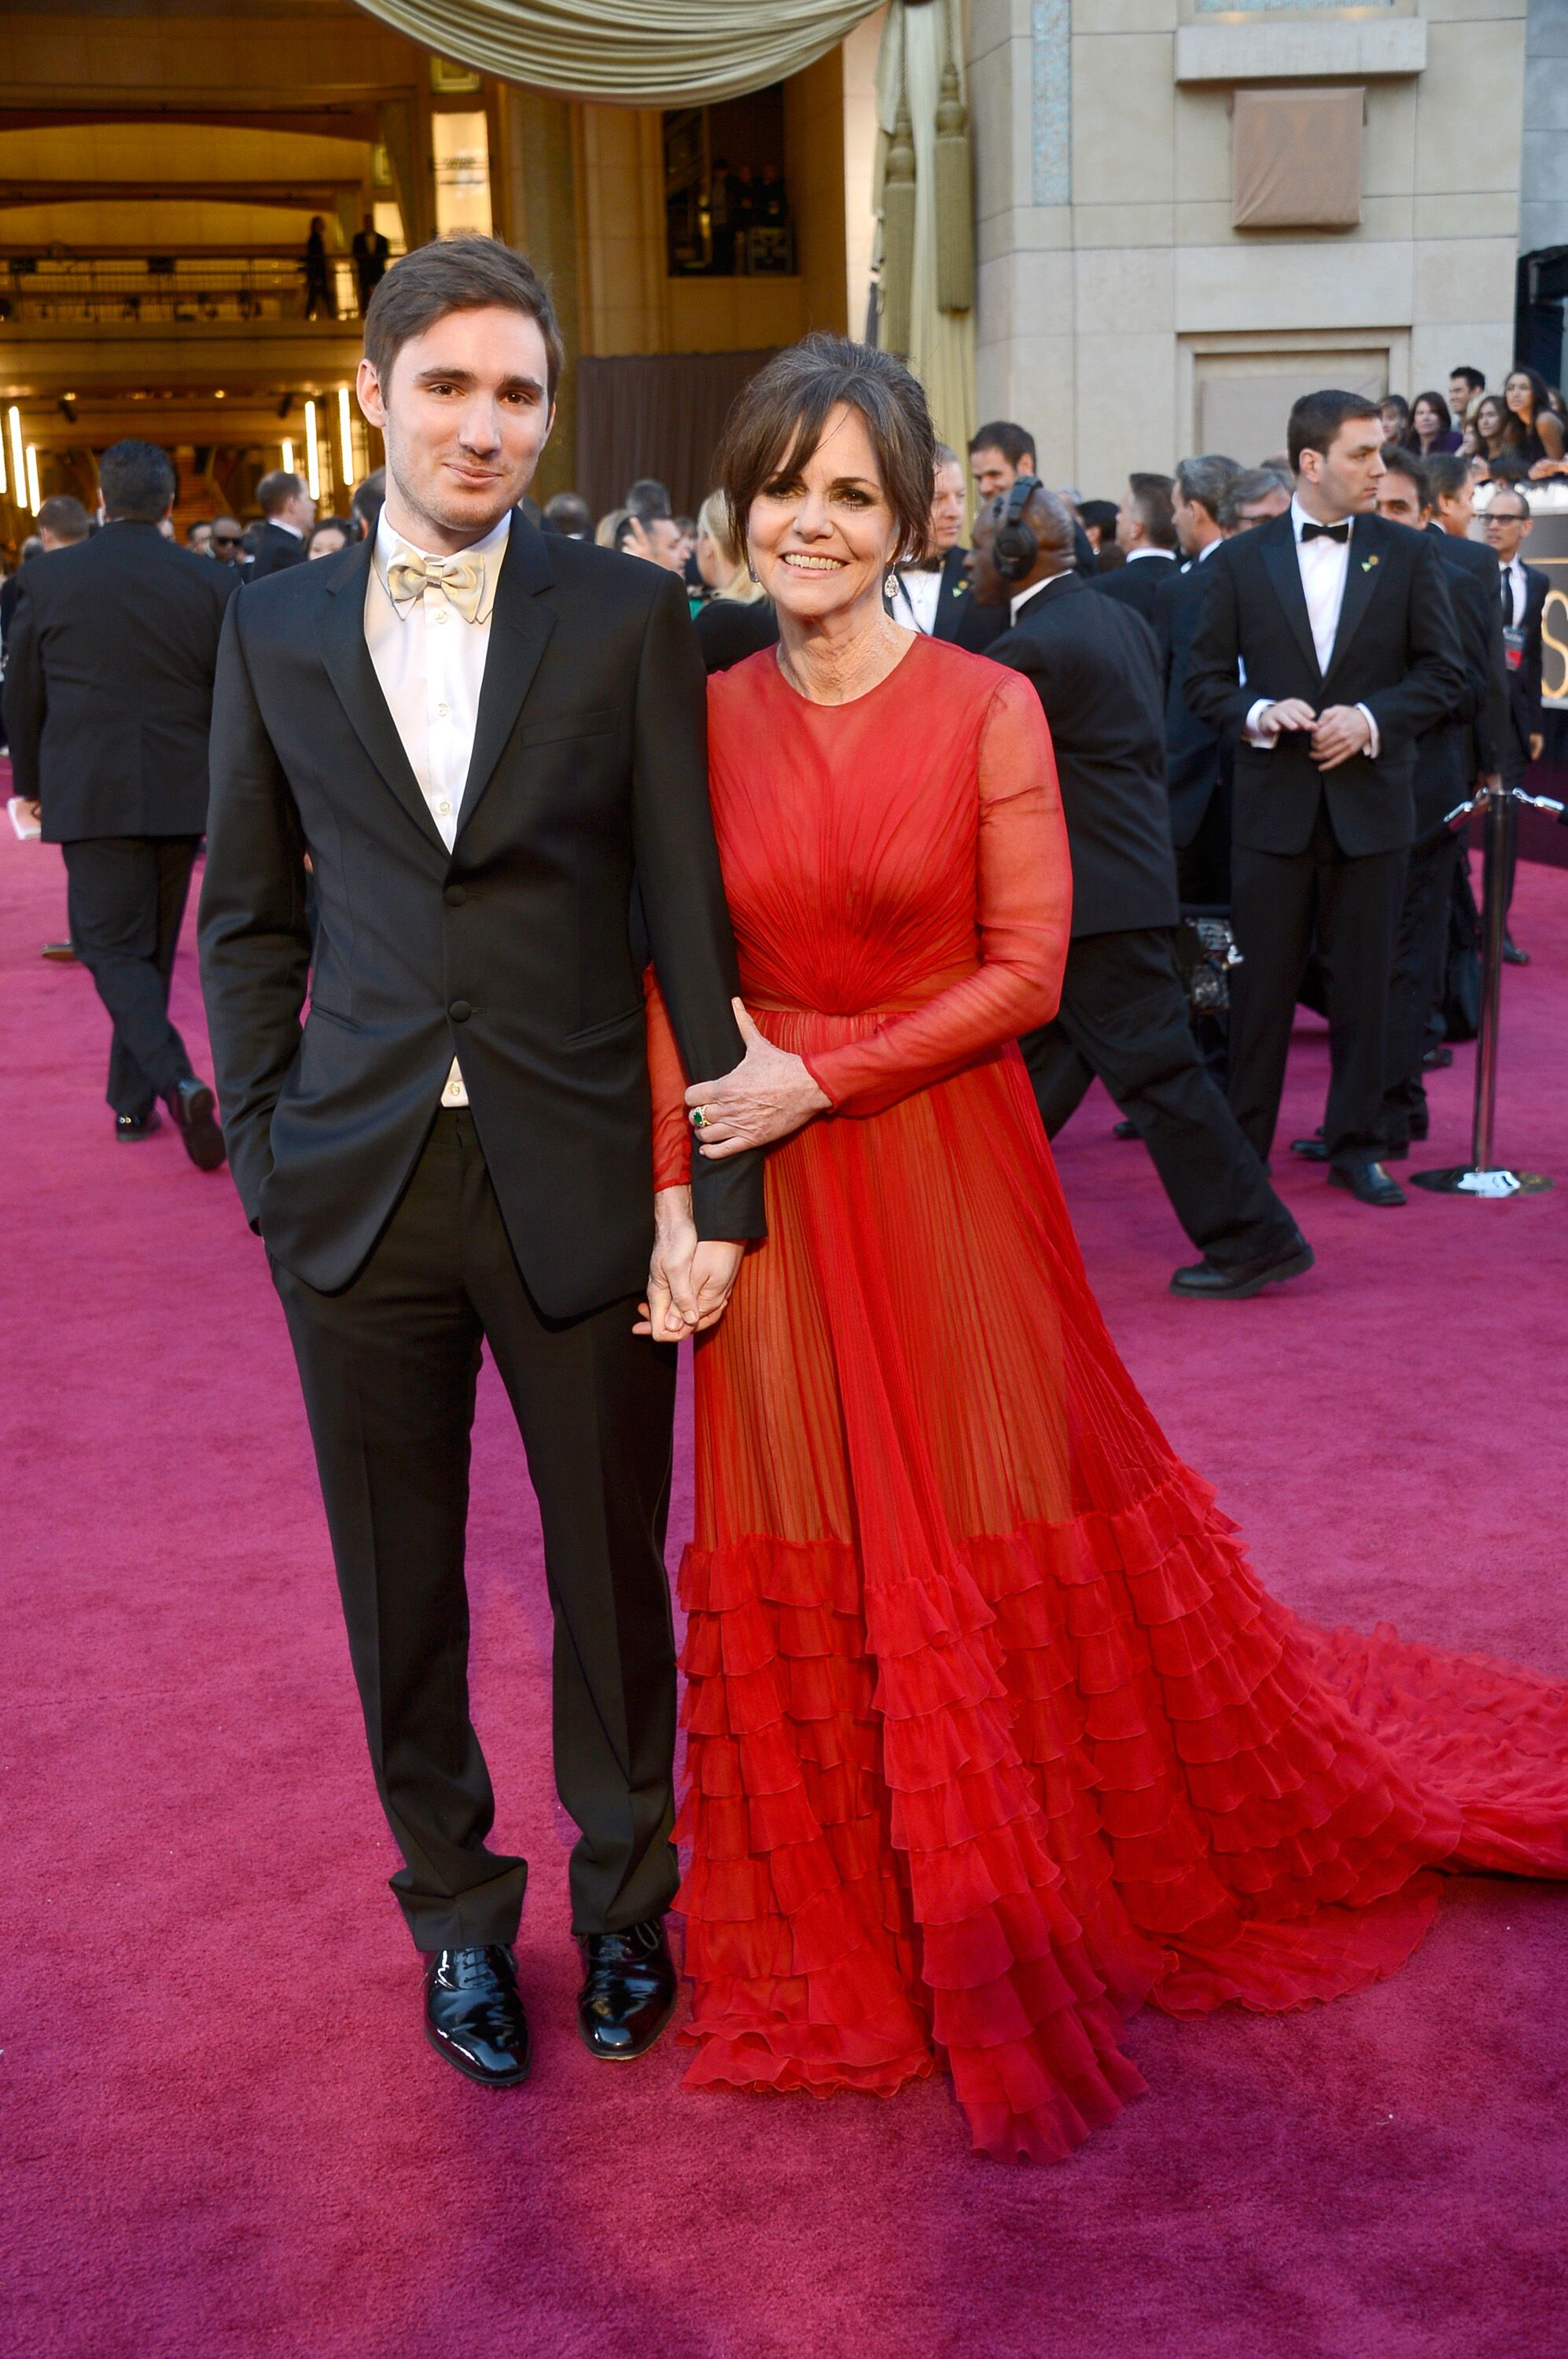 Sally Field and Sam Greisman at the Oscars. | Source: Getty Images